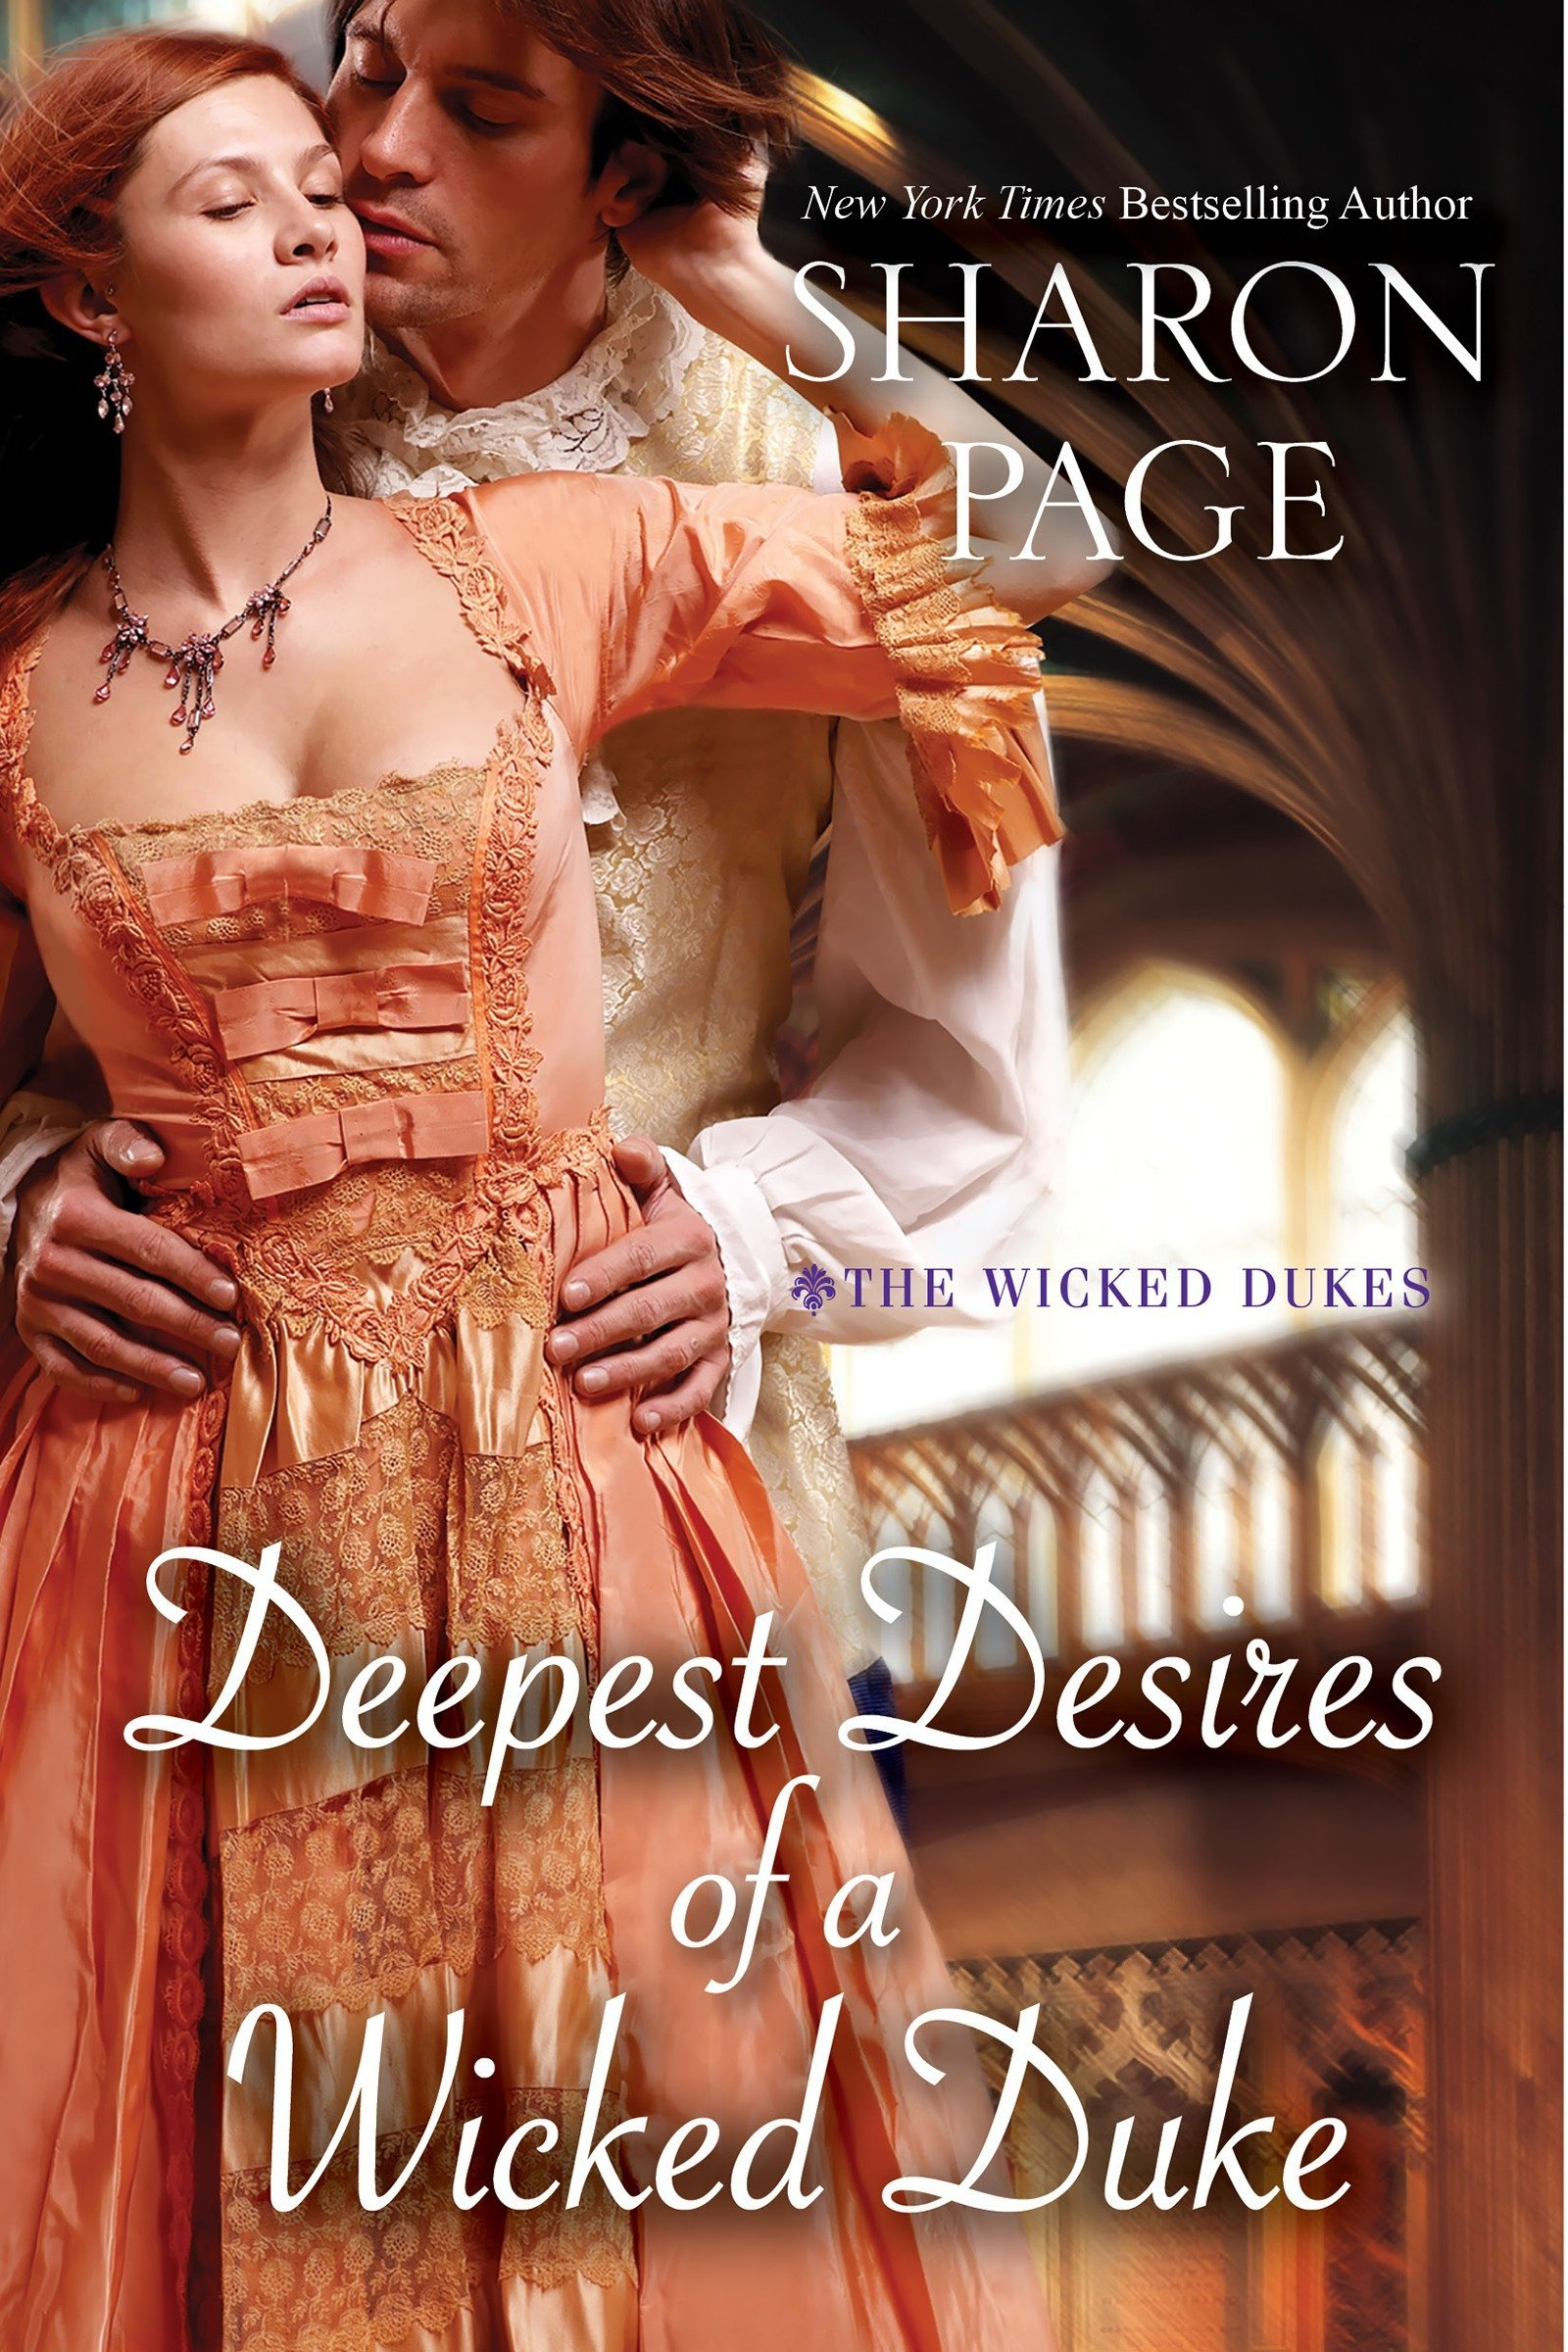 Deepest Desires of a Wicked Duke (The Wicked Dukes) PDF Text fb2 book